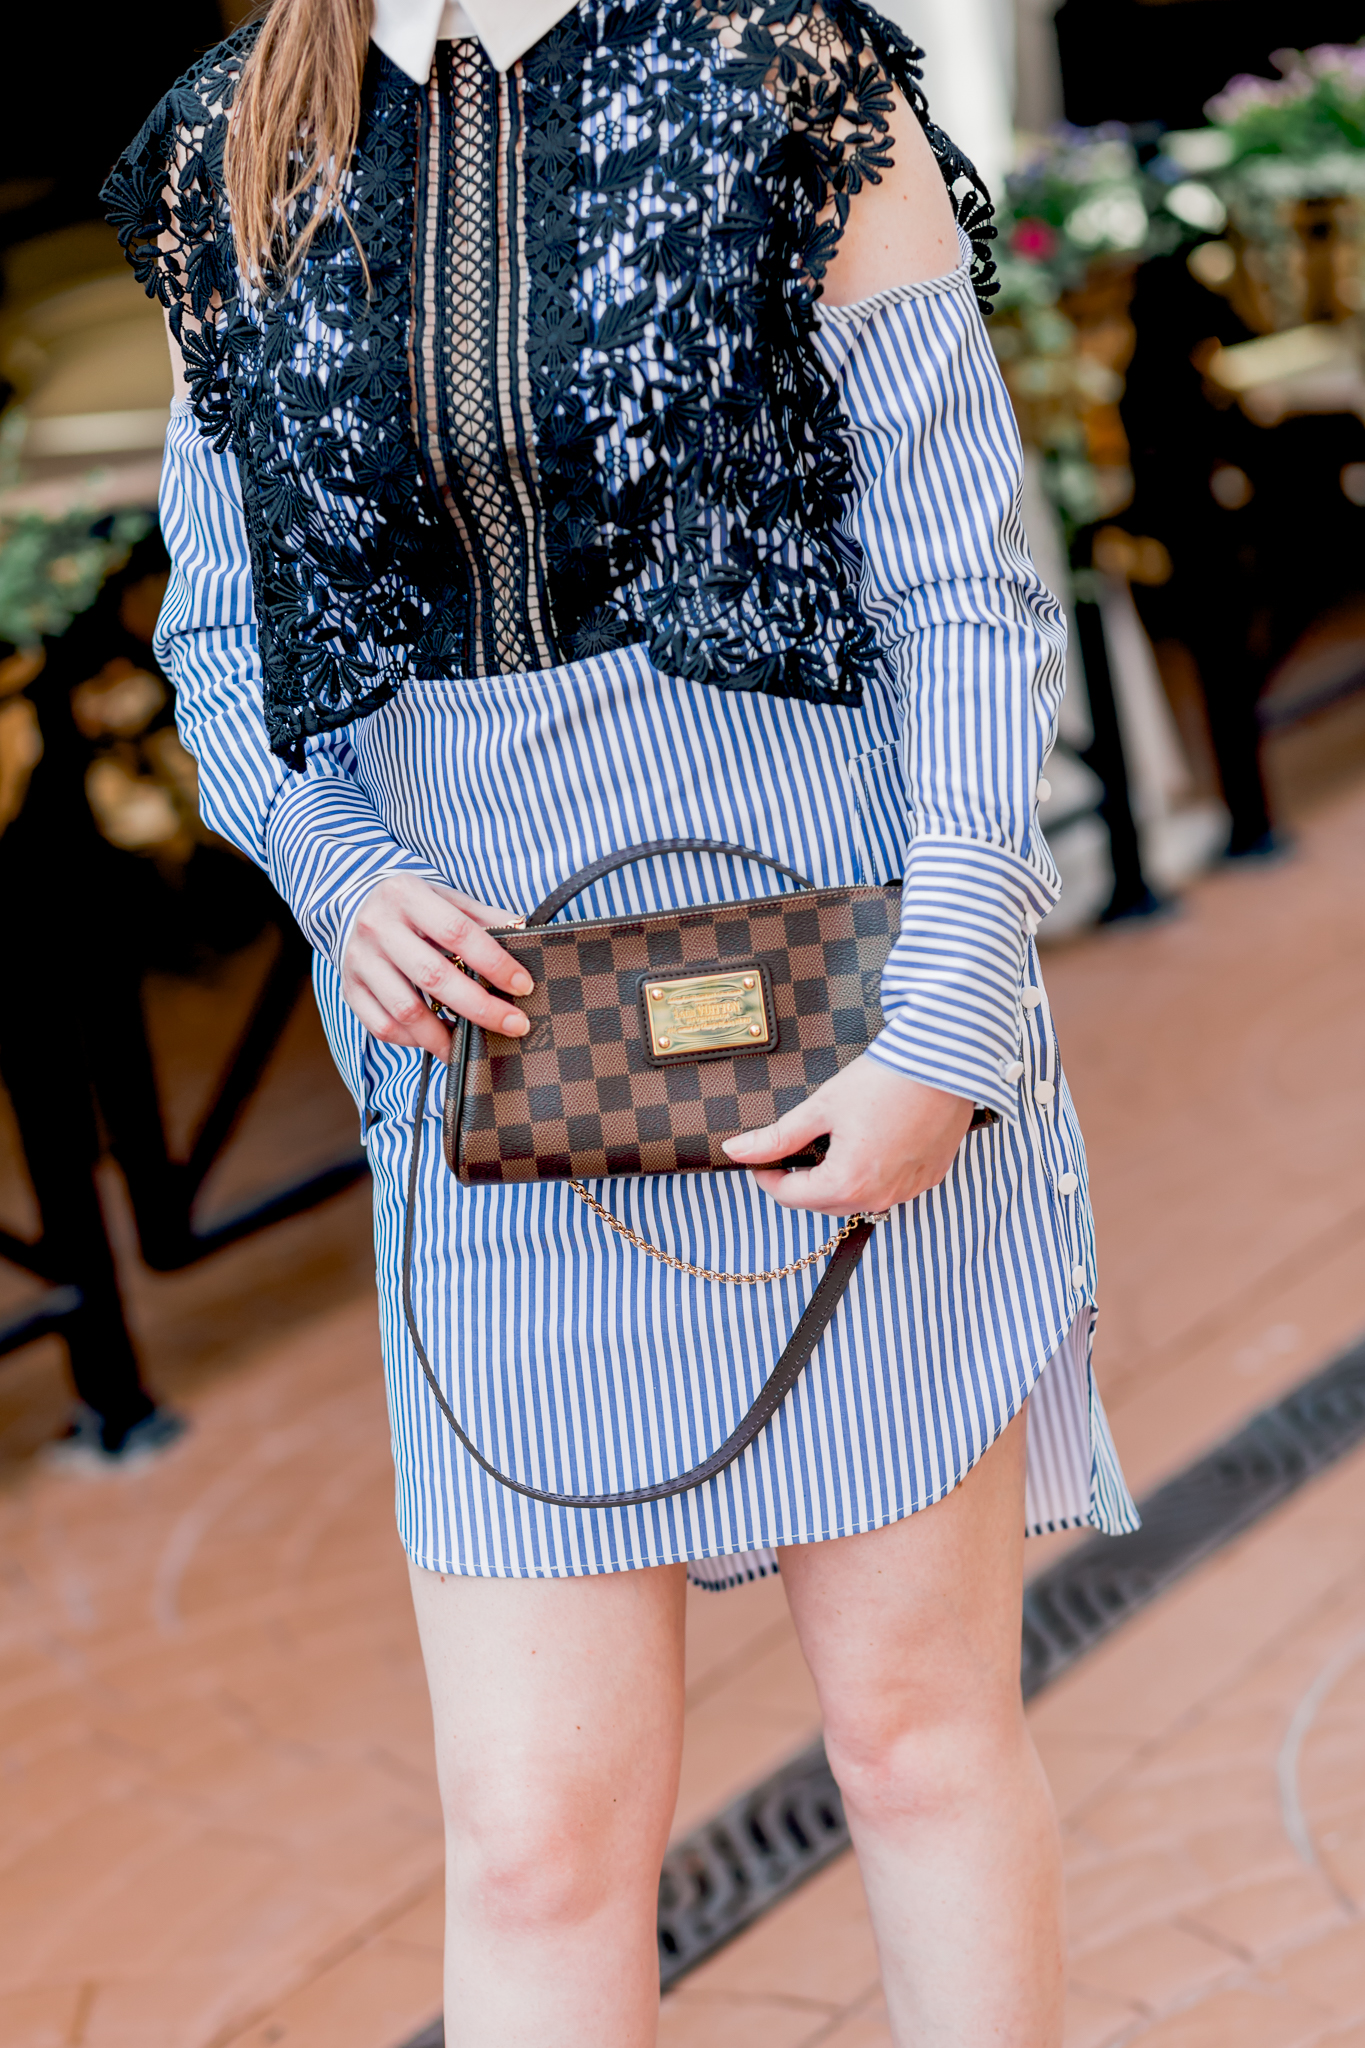 louis vuitton, louis vuitton eva clutch damier ebene, self- portrait, self portrait dress, self portrait cold shoulder shirtdress, shirtdress, blue and white shirtdress, self-portrait shirtdress